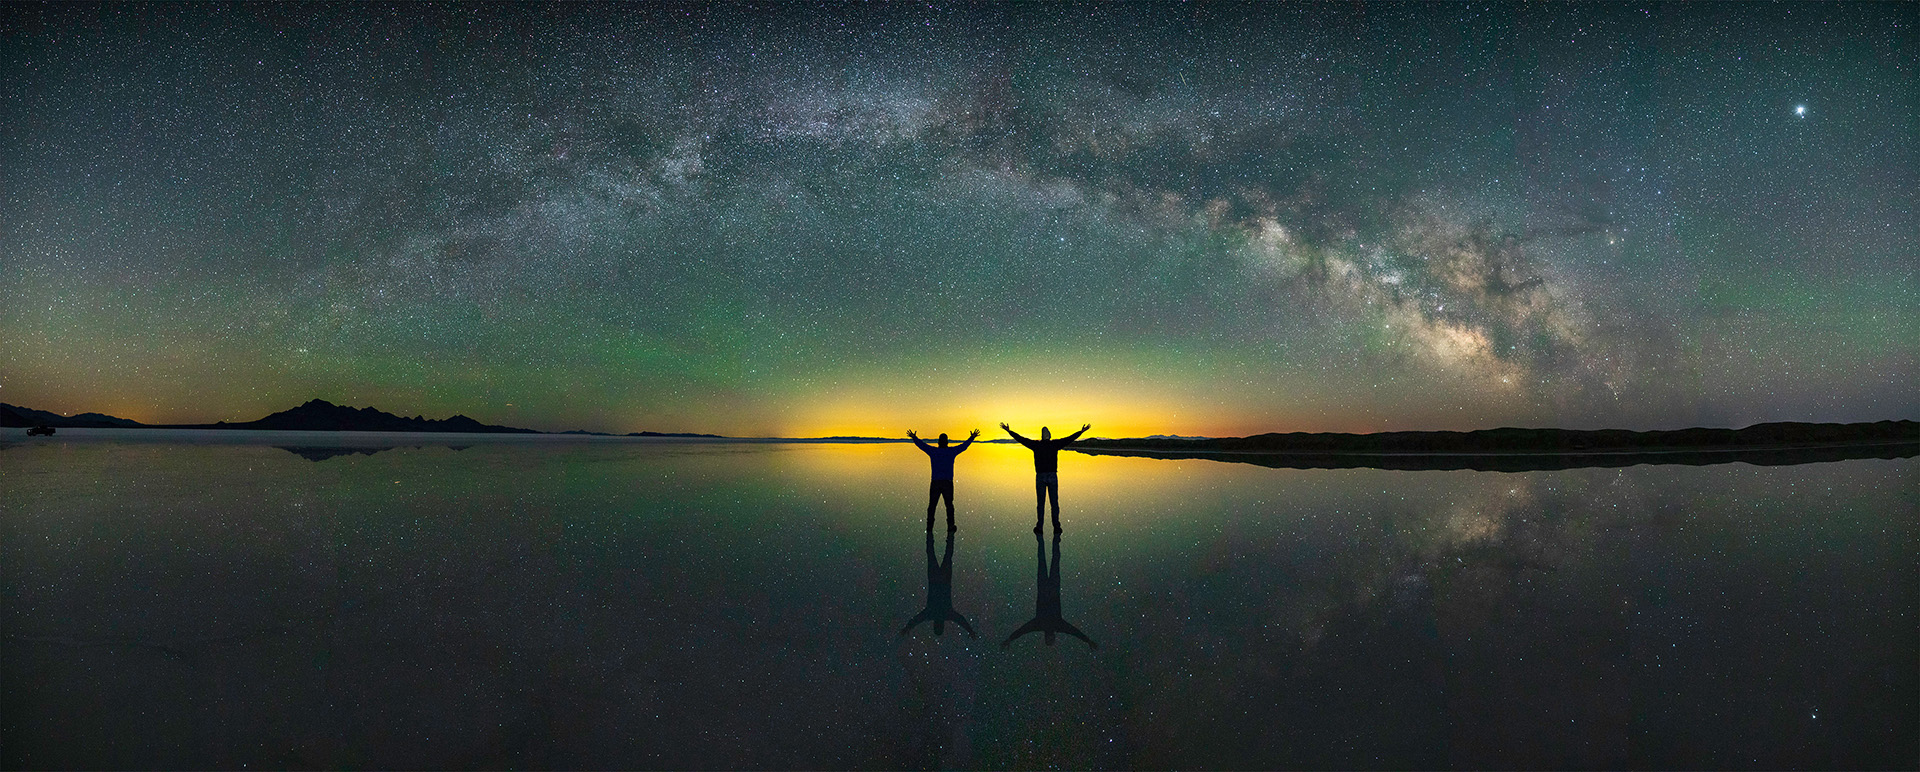 Photo by Aaron King. Bonneville Salt Flats reflected Milky Way. June 2nd, 2018 Panorama 24mm F2 8 seconds 8000 iso.